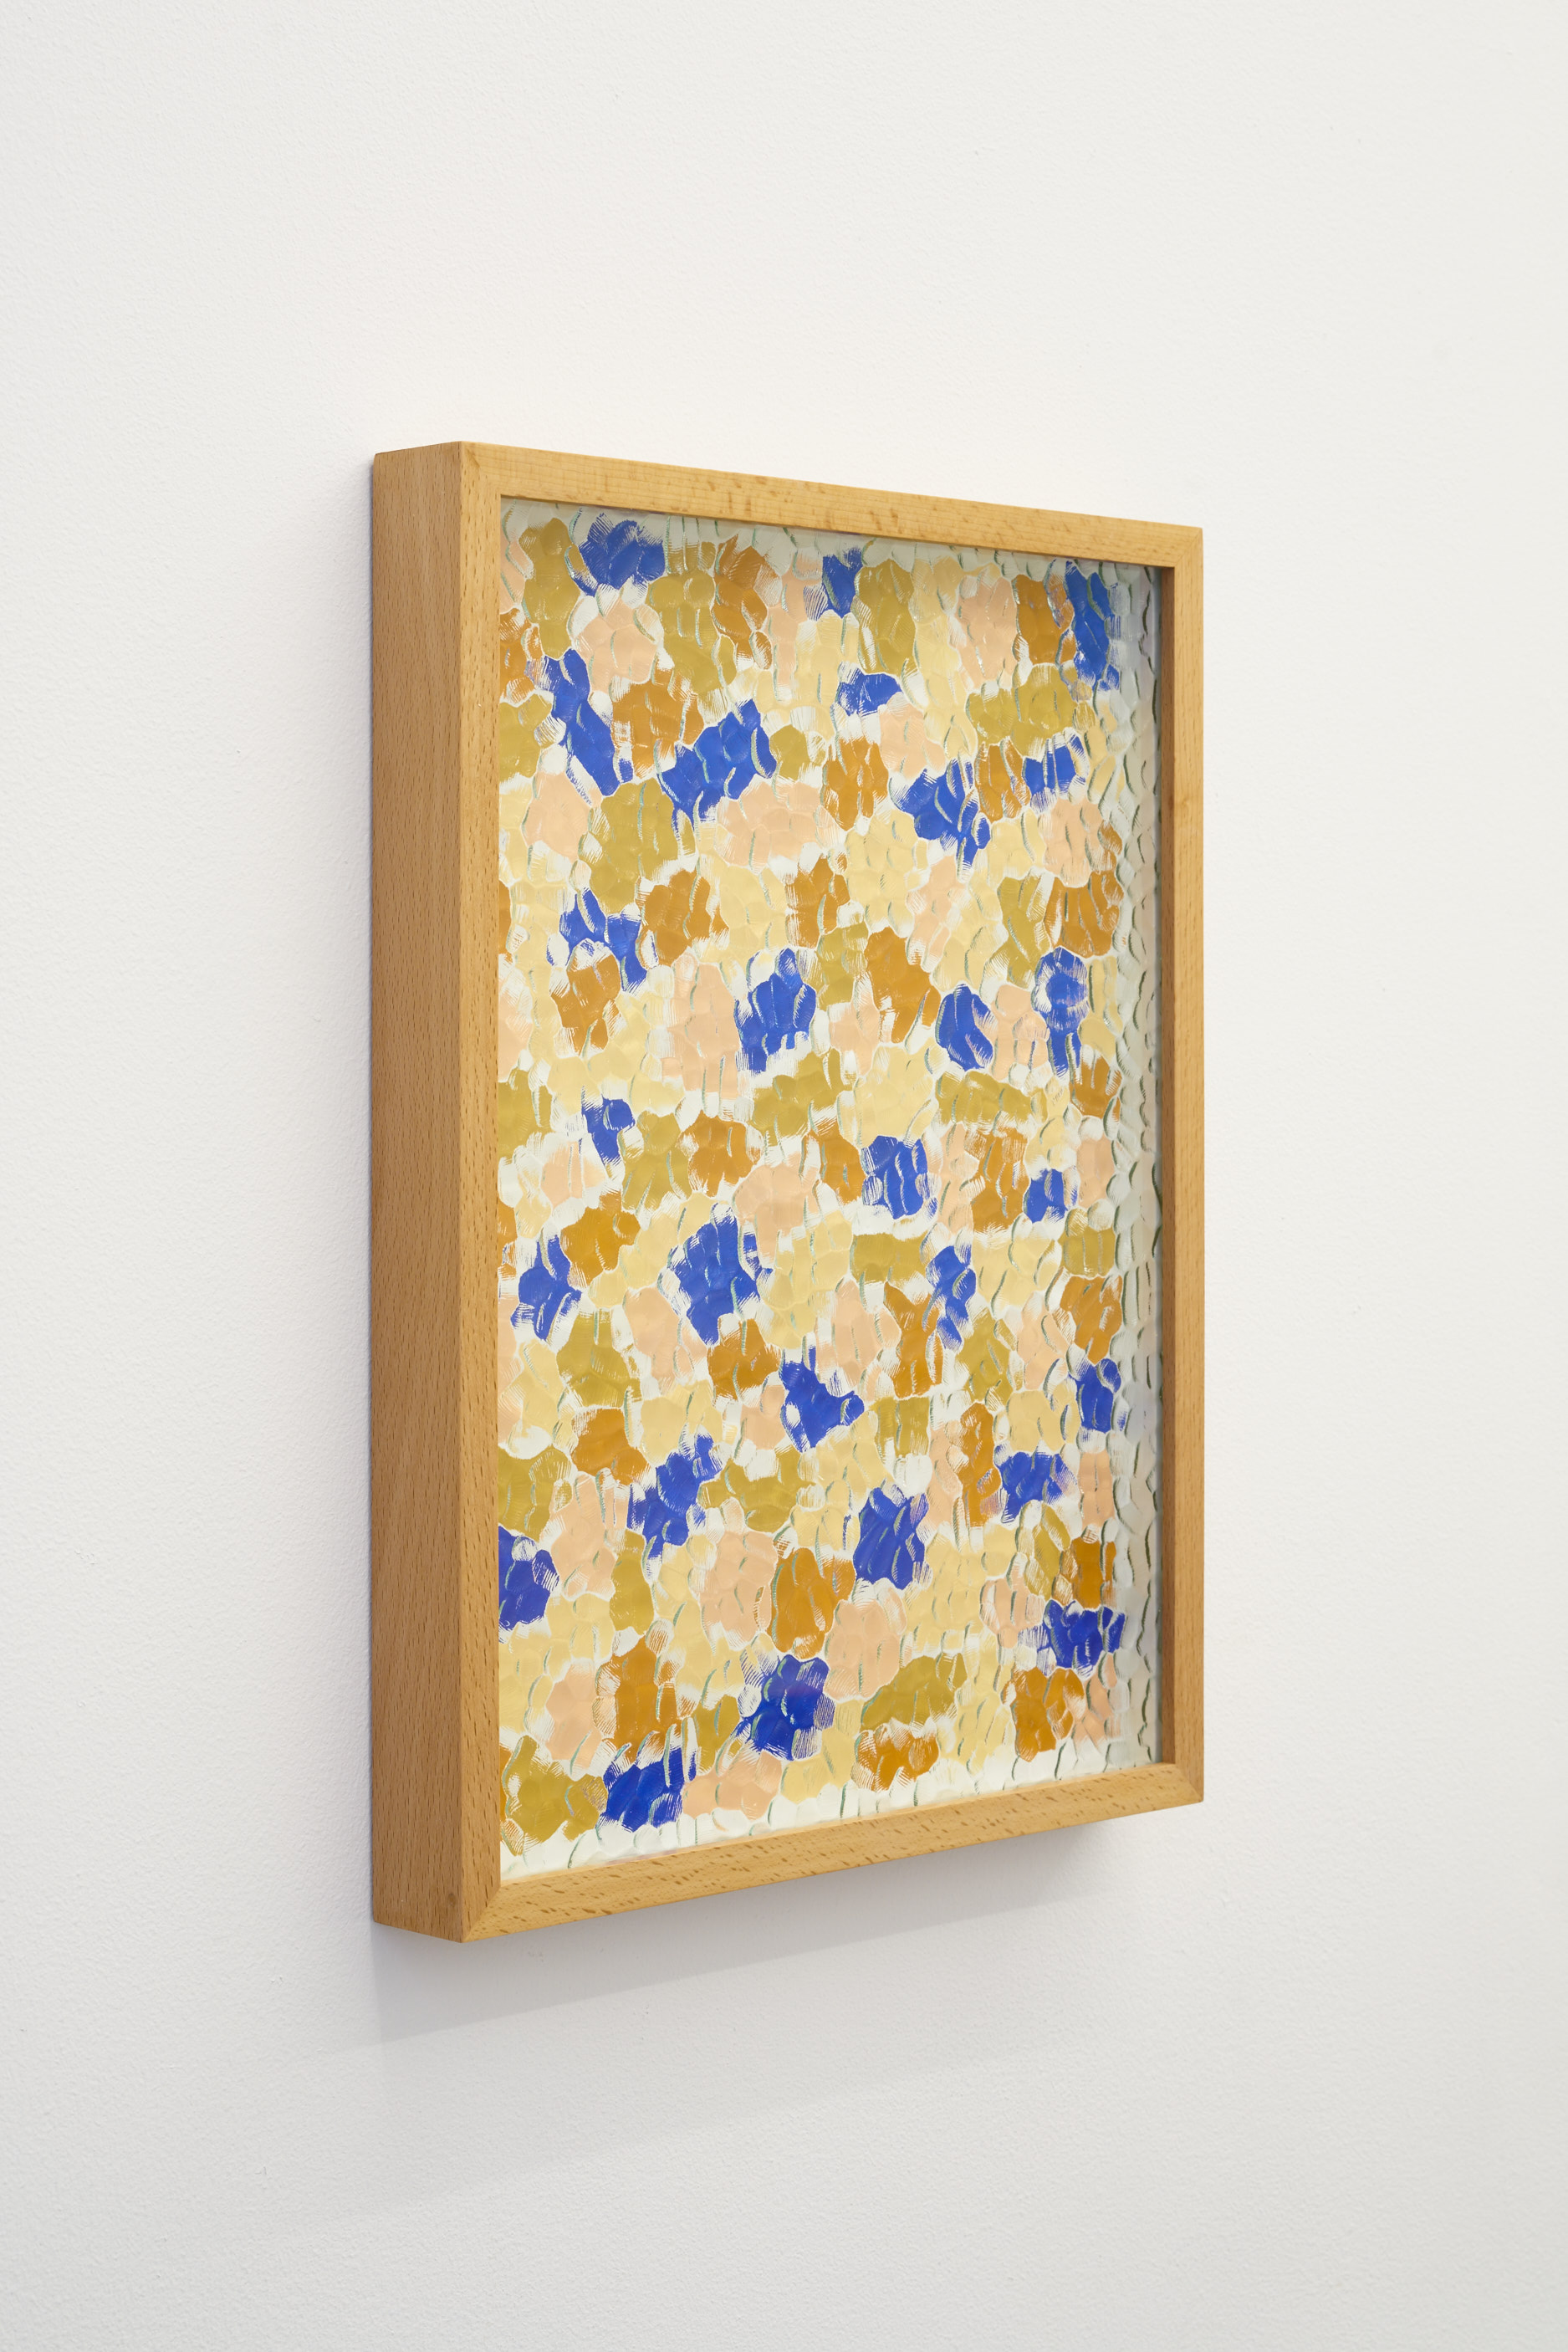 Richard Healy Caramel Cream (from Jacquard), 2015. Tenderpixel.